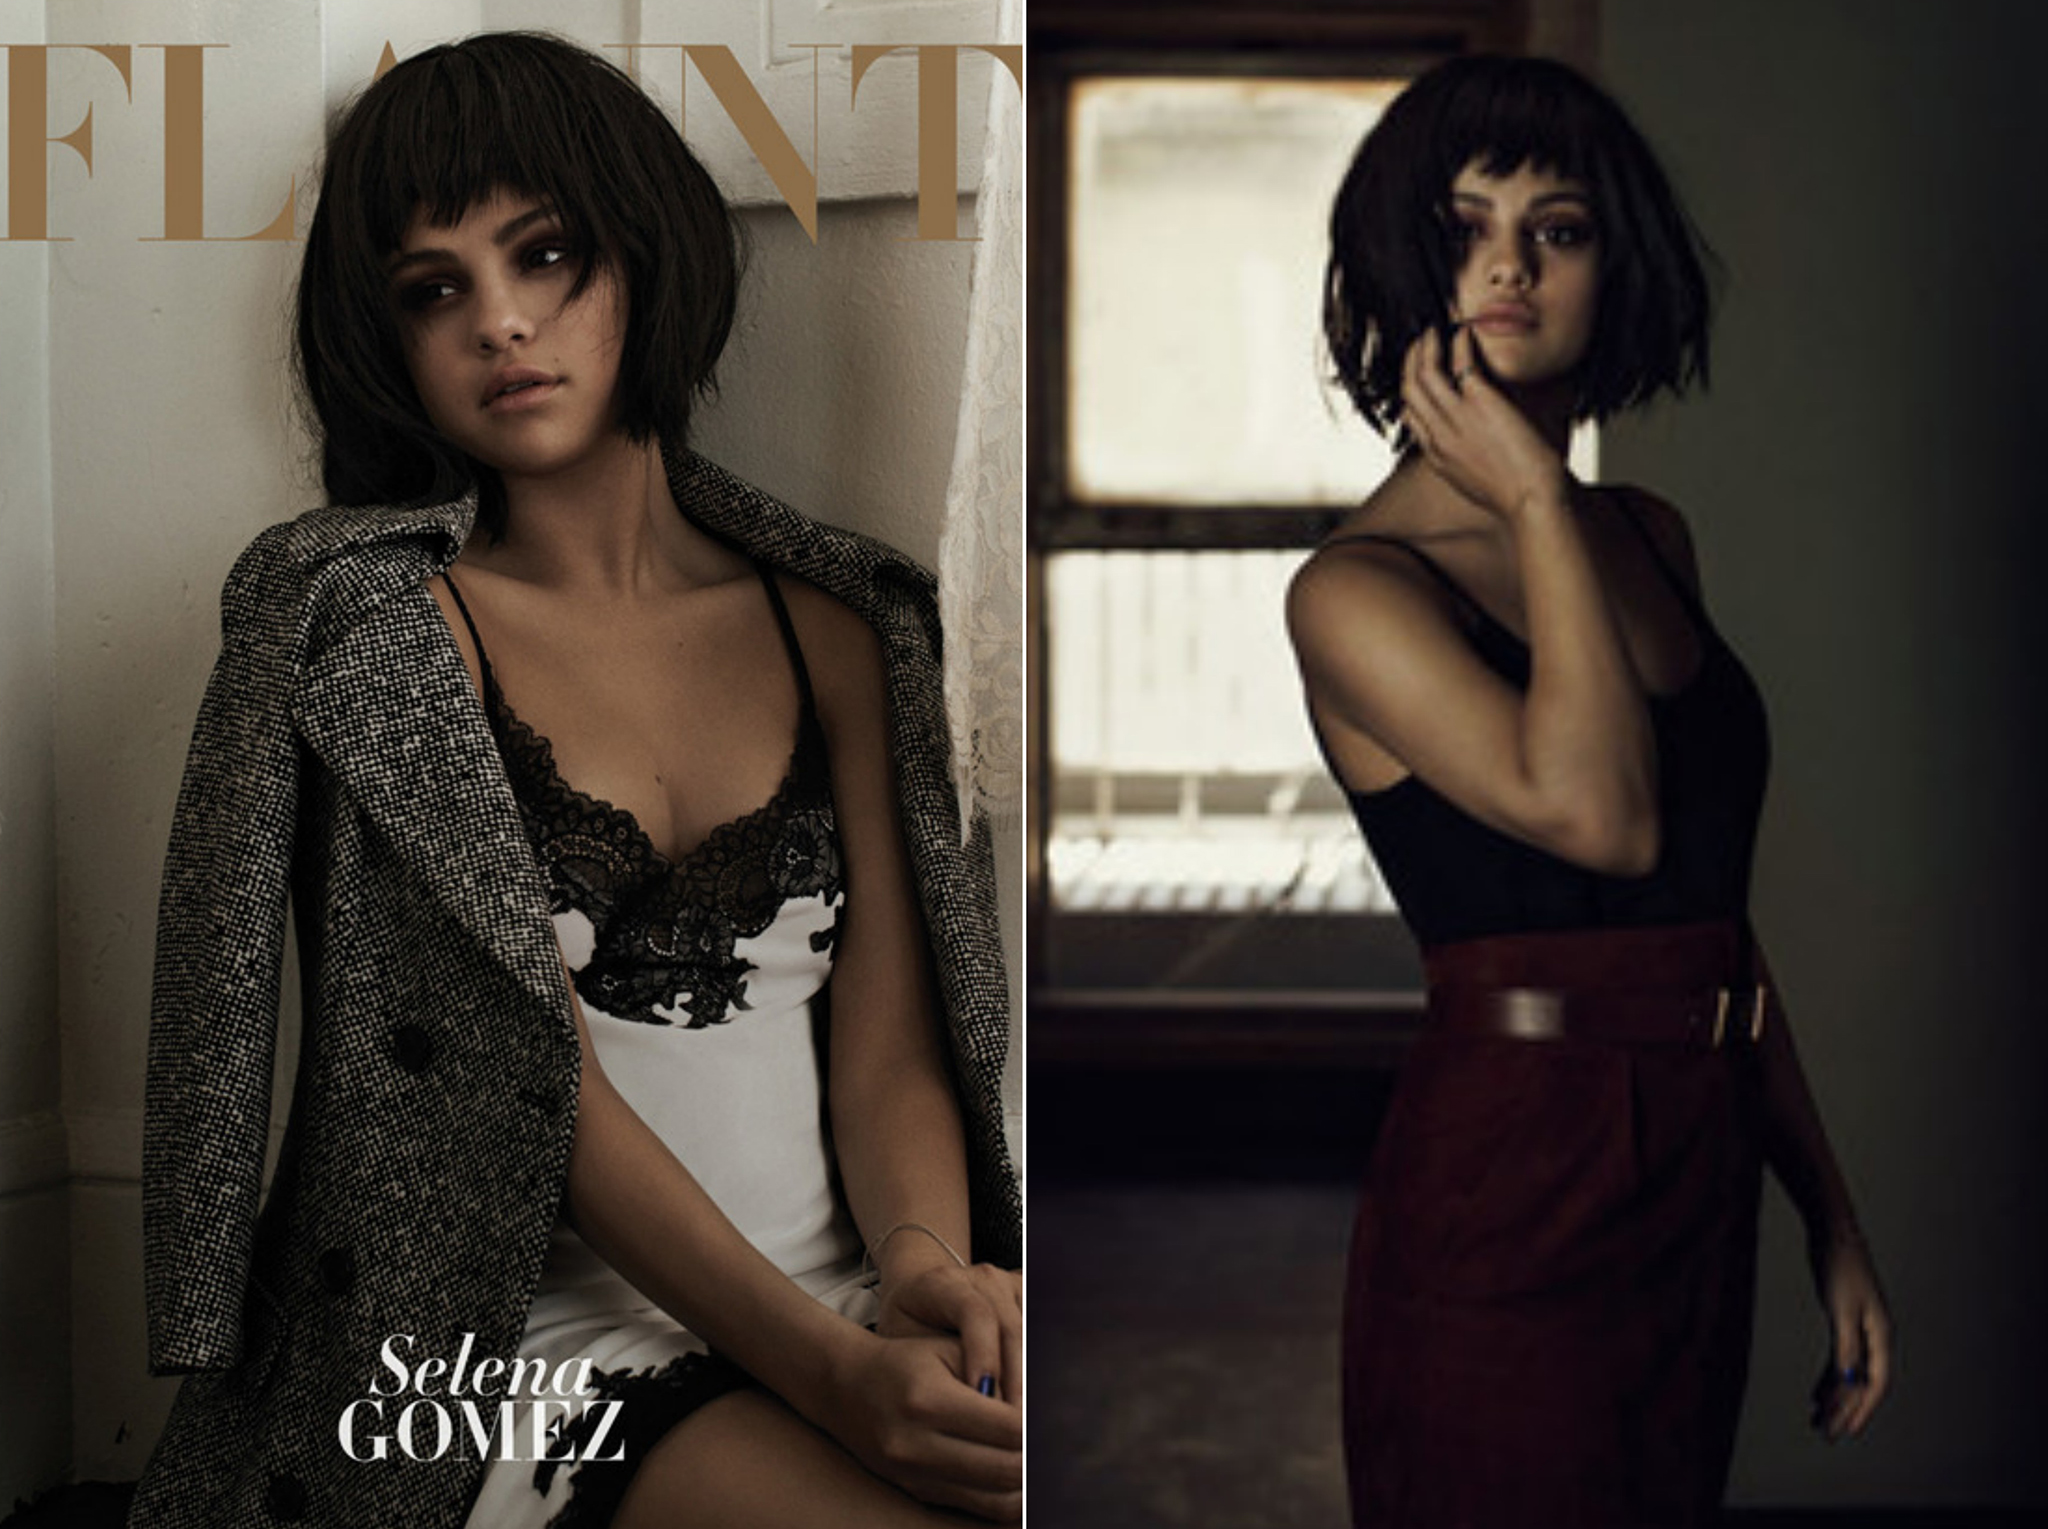 Remarkable, useful Selena gomez flaunt what time?